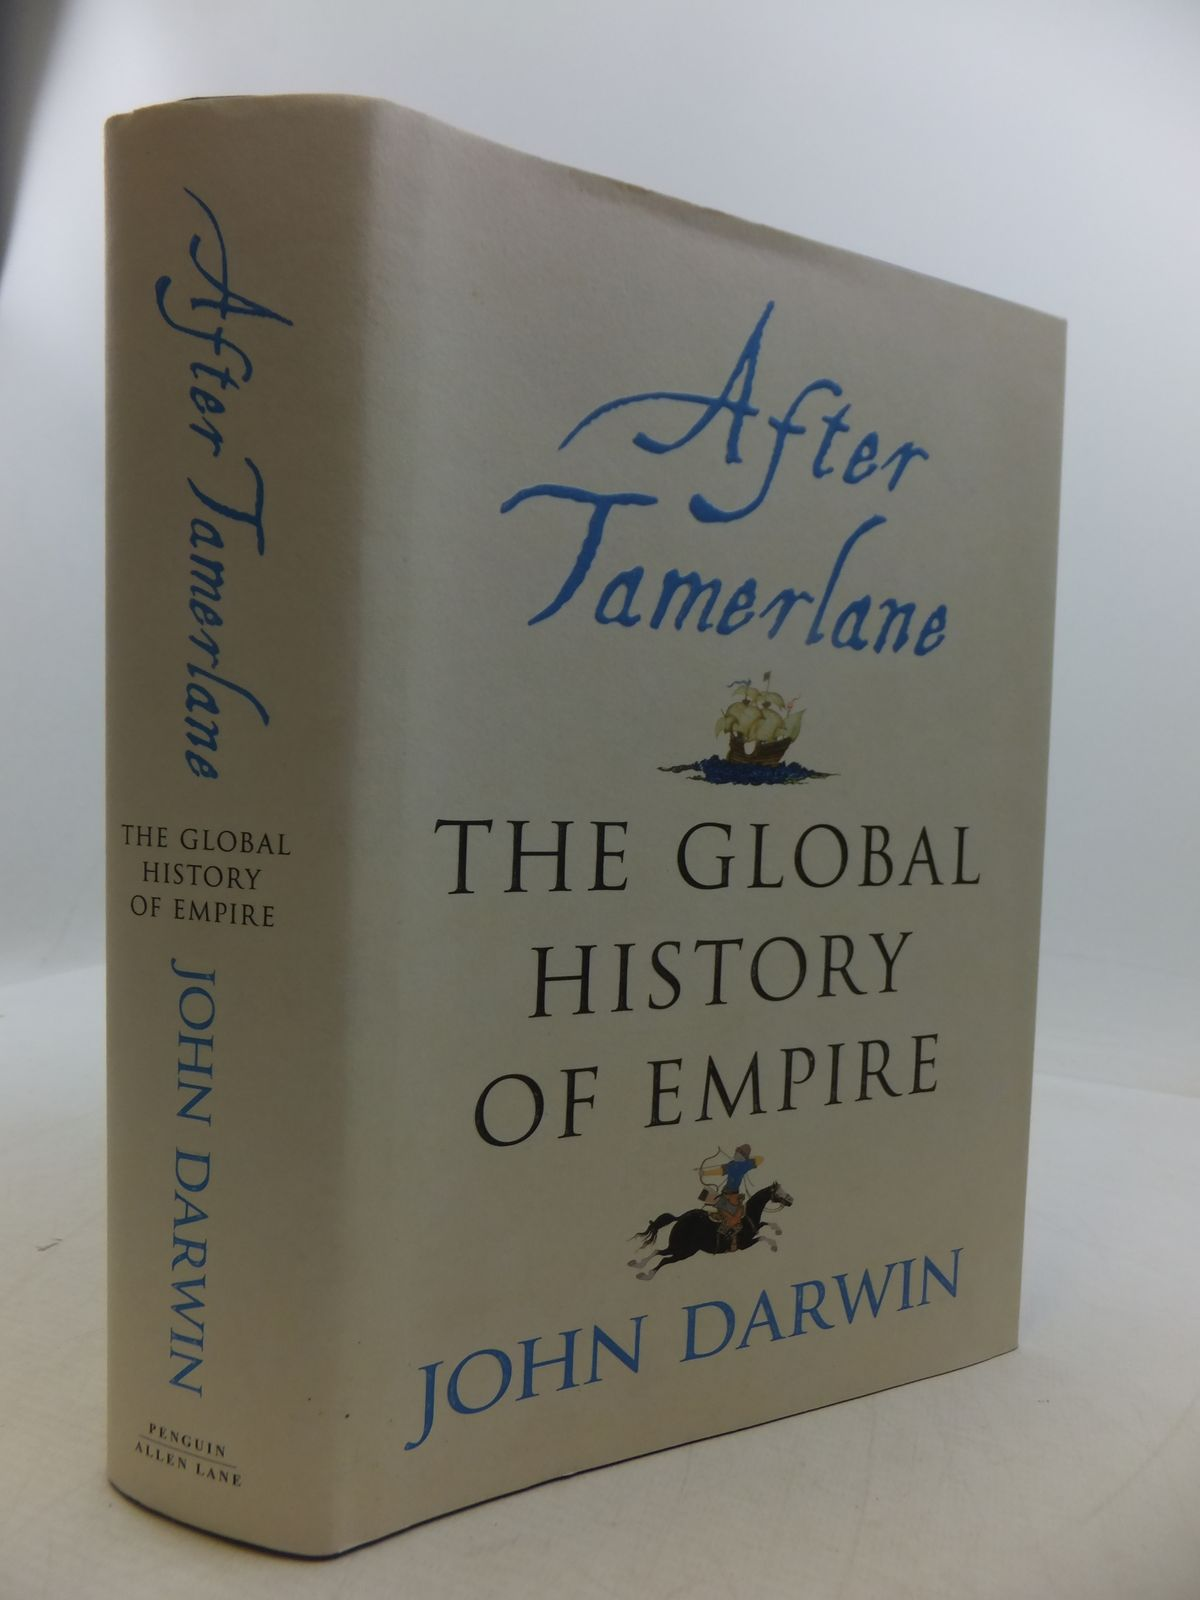 Photo of AFTER TAMERLANE: THE GLOBAL HISTORY OF EMPIRE SINCE 1405 written by Darwin, John published by Allen Lane (STOCK CODE: 1808251)  for sale by Stella & Rose's Books